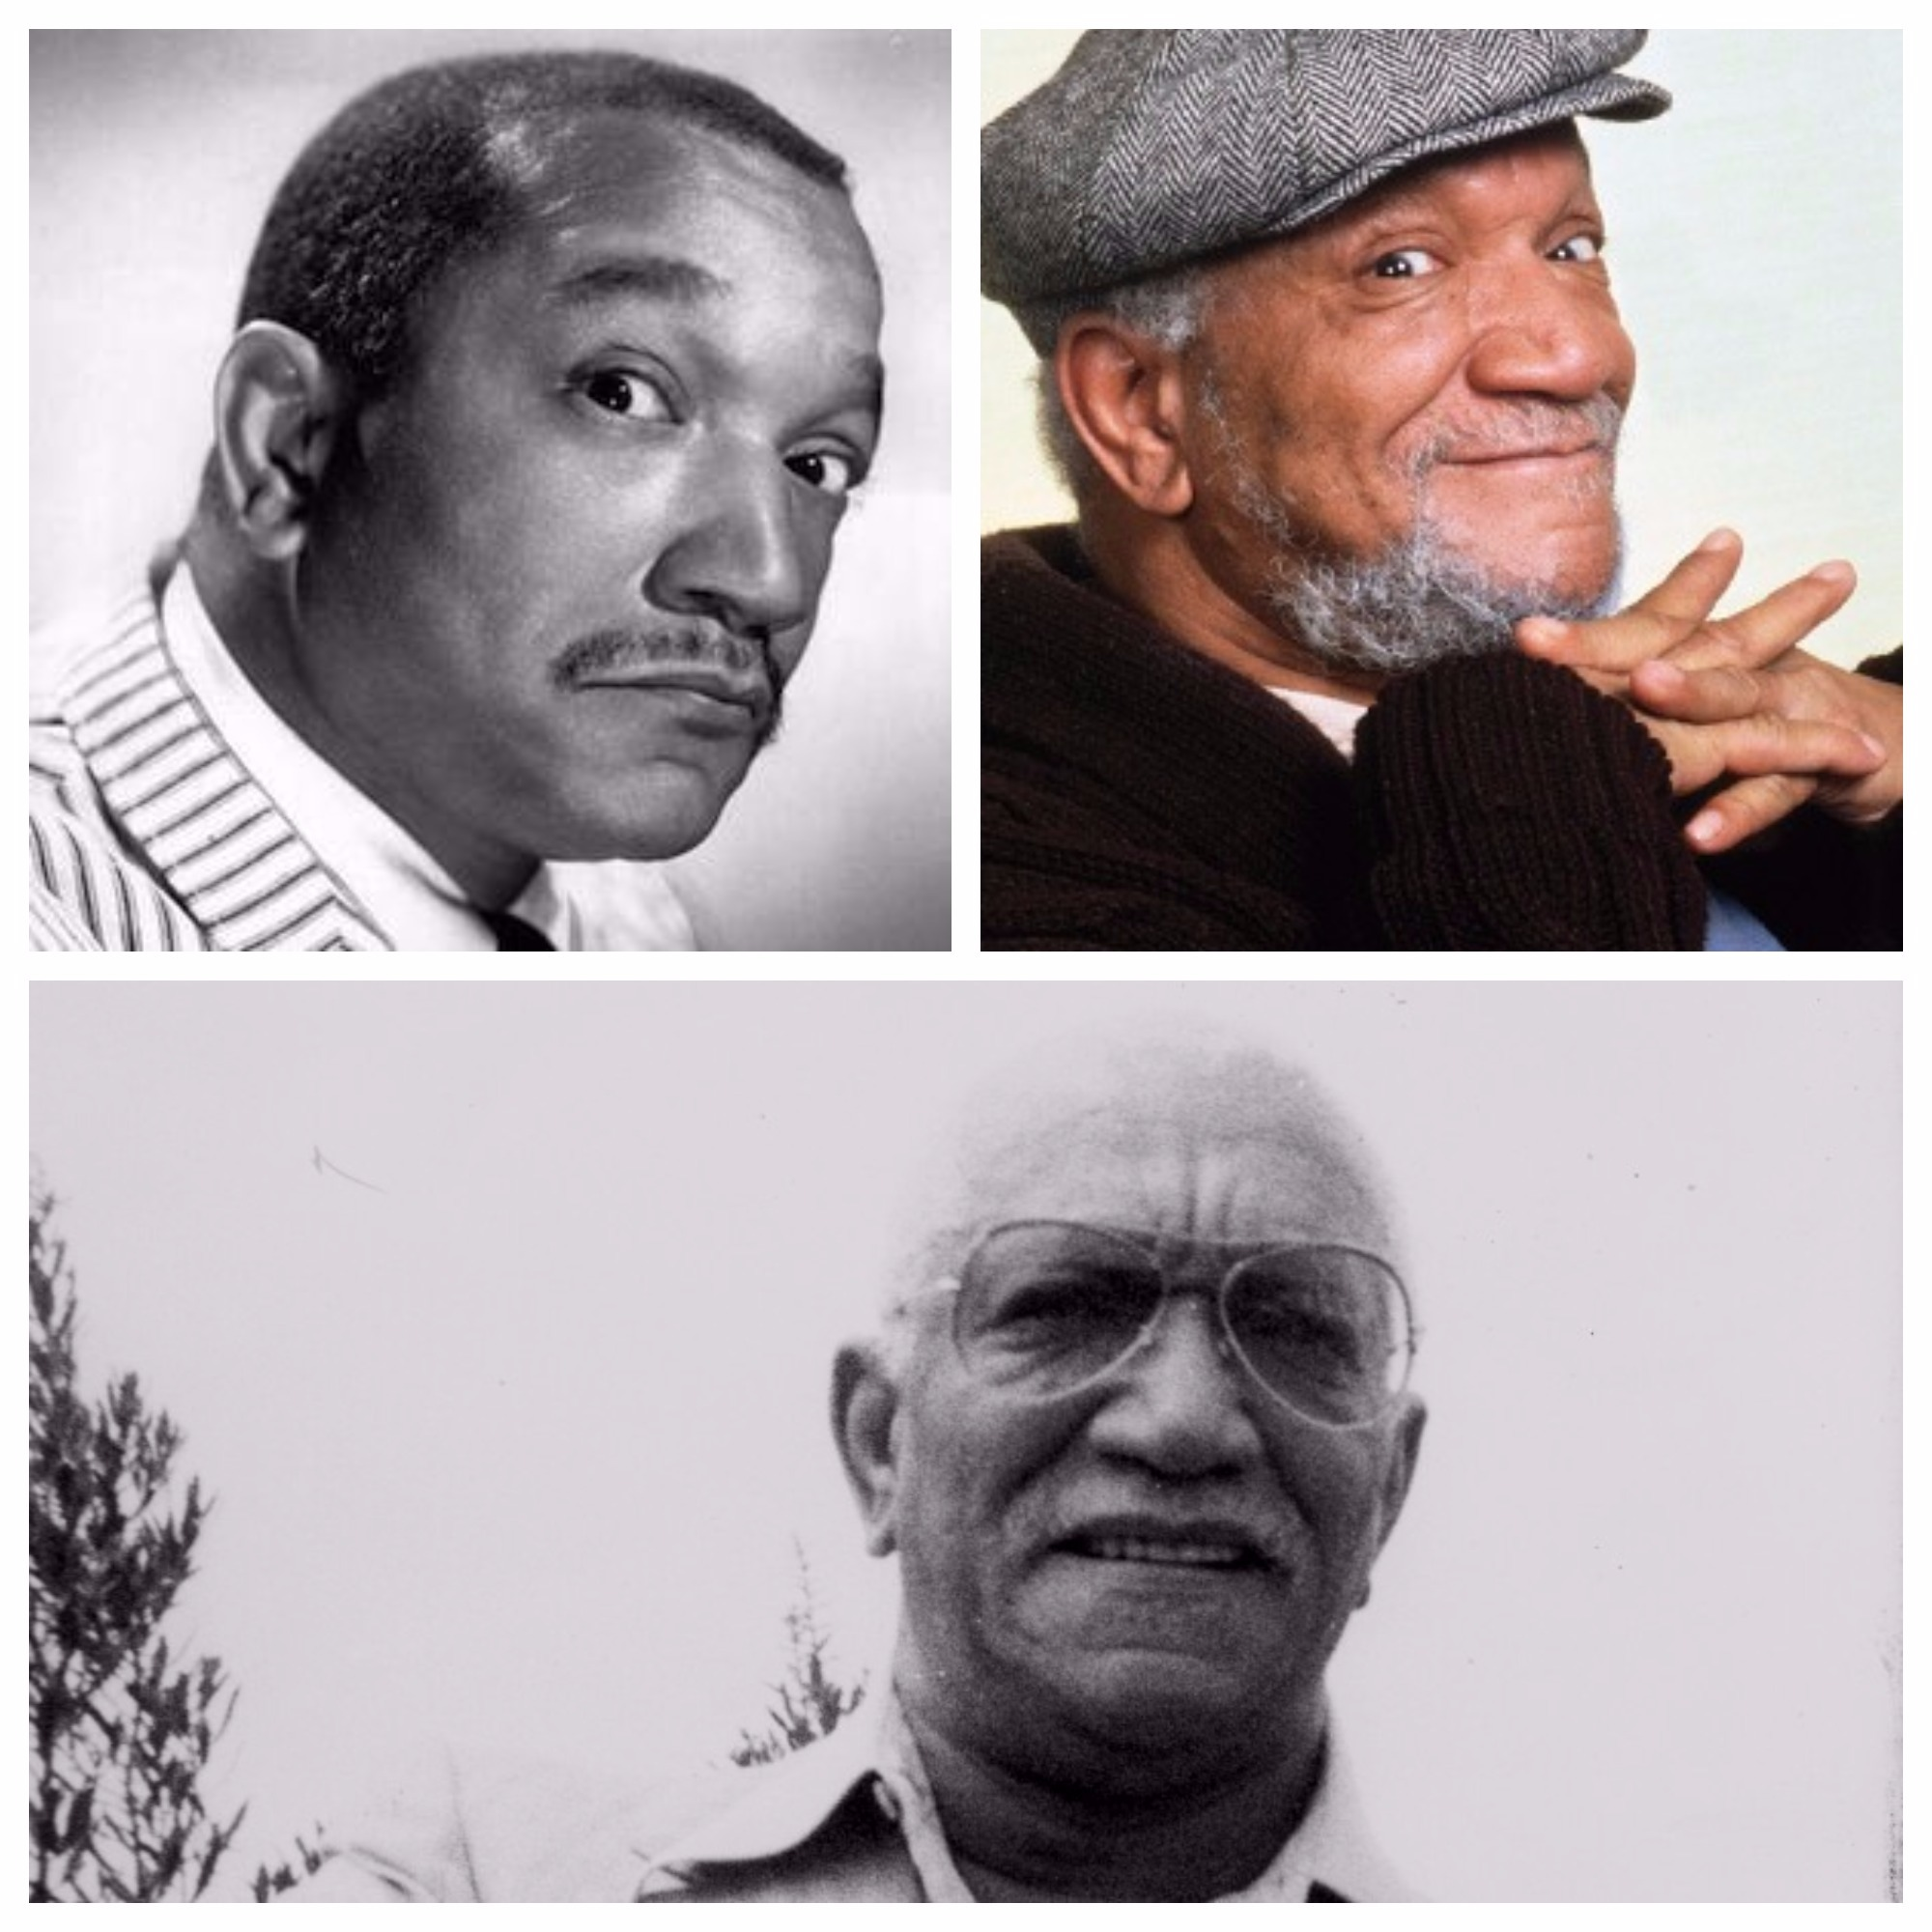 Red Foxx, What does the cast of Sanford and Sons Look Like, What happened to the cast of sanford and sons, celebs, movies/tv